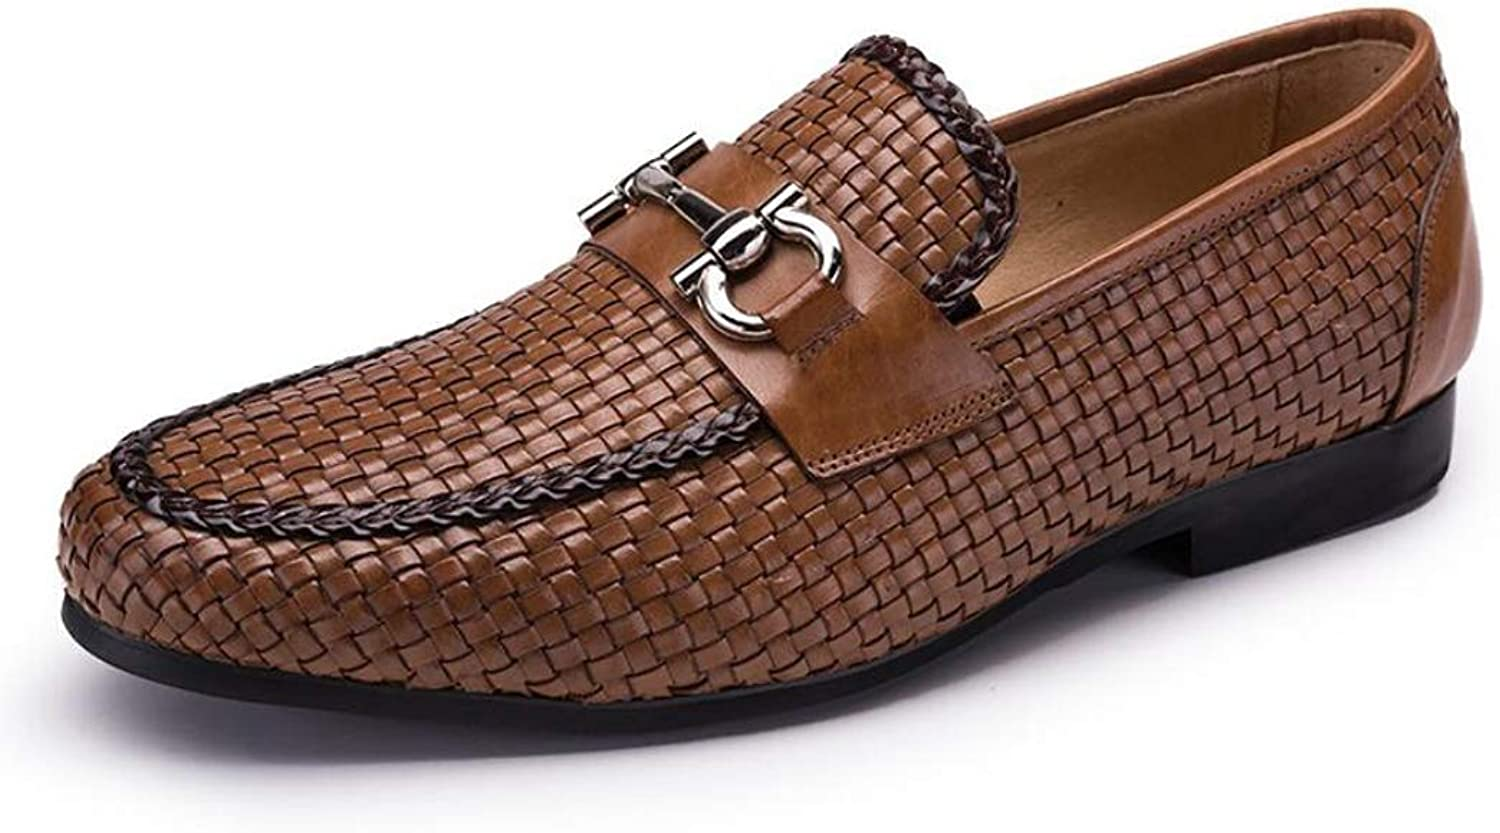 Classic Woven Leather Men's Business shoes Trendy Pointed shoes shoes Breathable Wear Work shoes